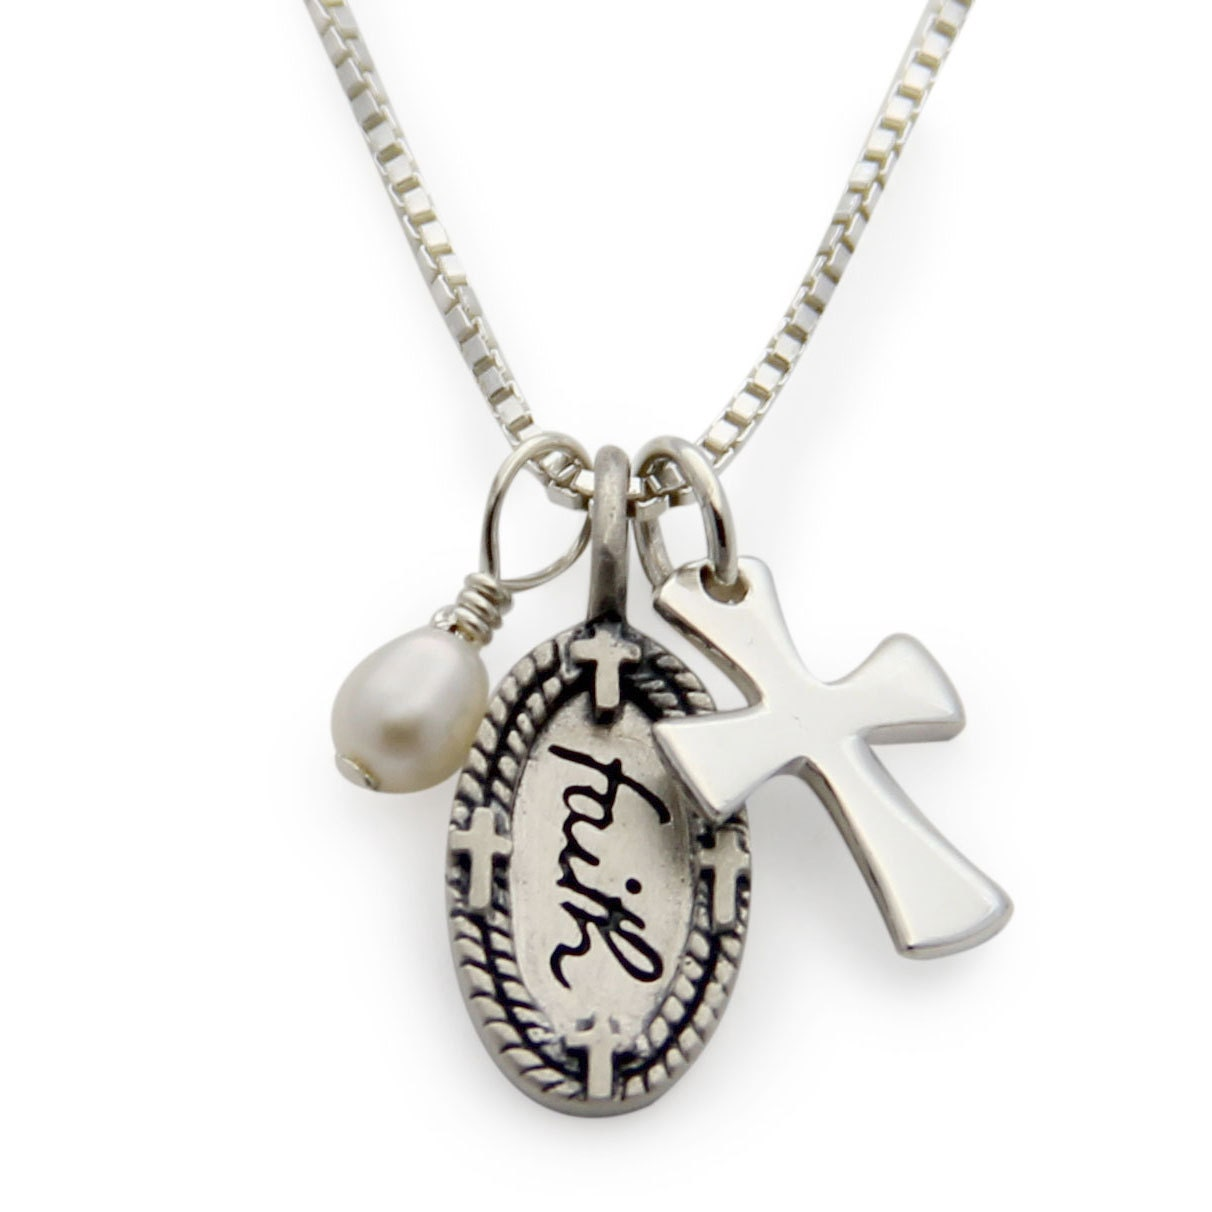 faith necklace silver faith cross charm necklace dainty